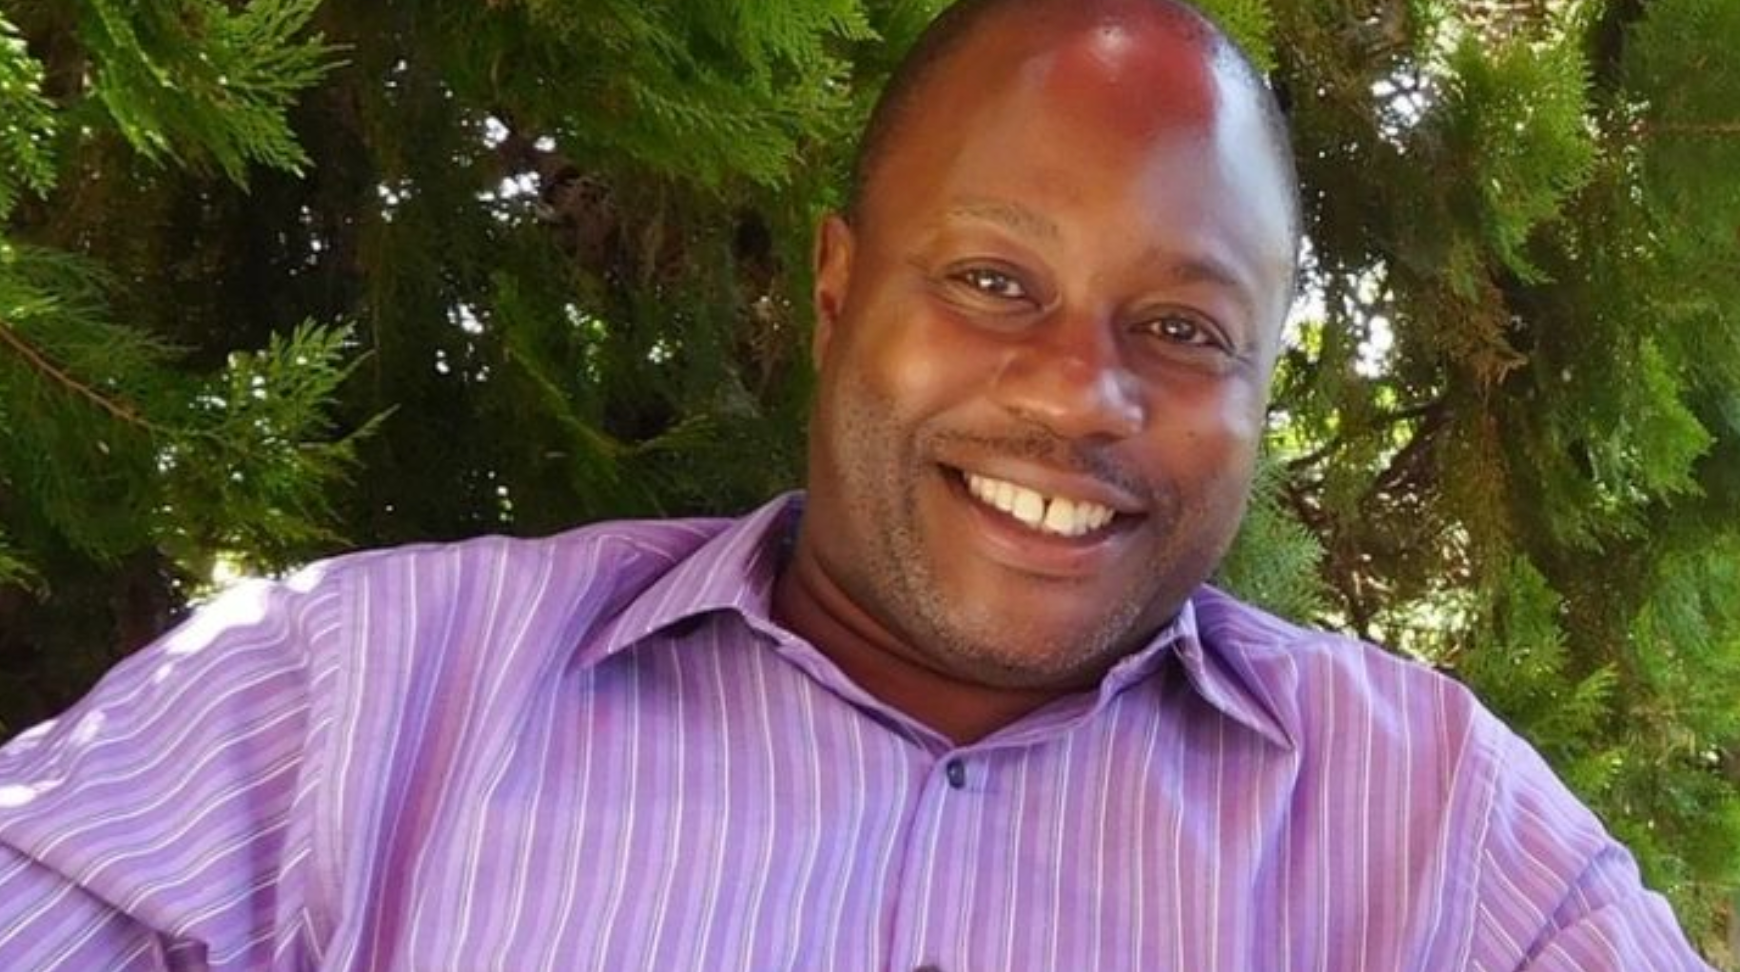 Covid victim George Ziwa needs your support for African funeral